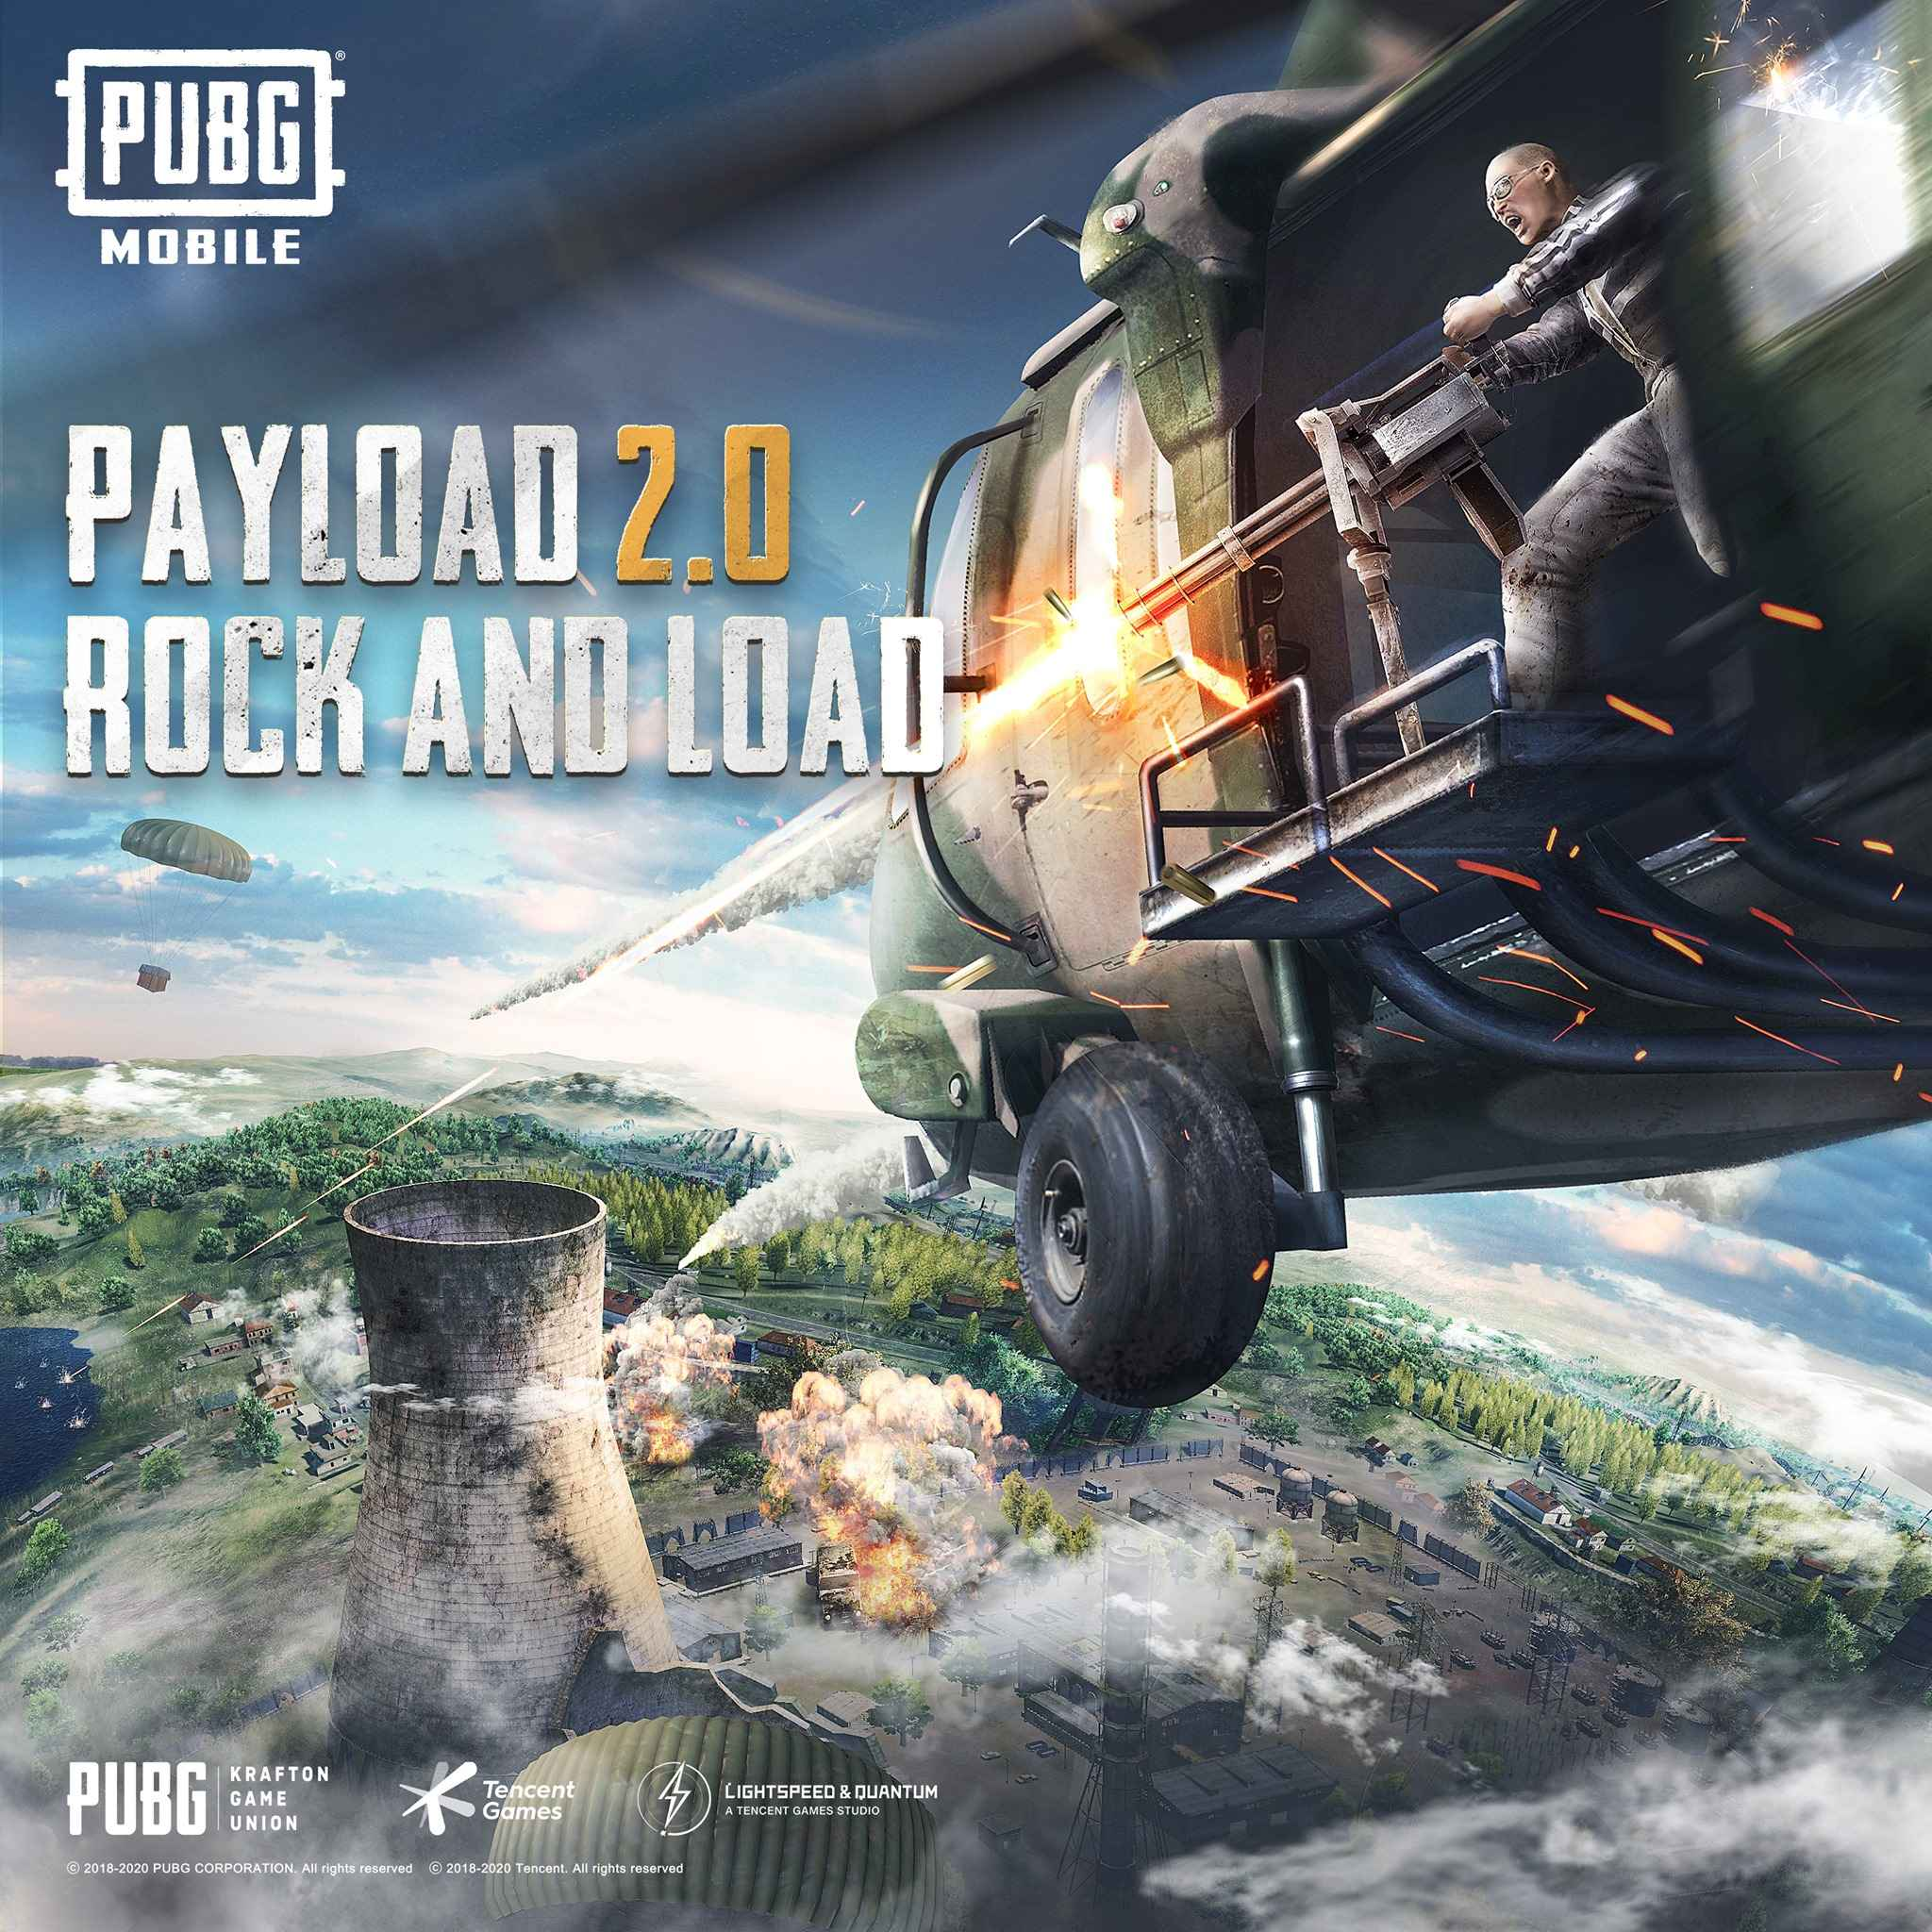 3 WWCD Auto Vehicles on PUBG Mobile 2.0 Payload